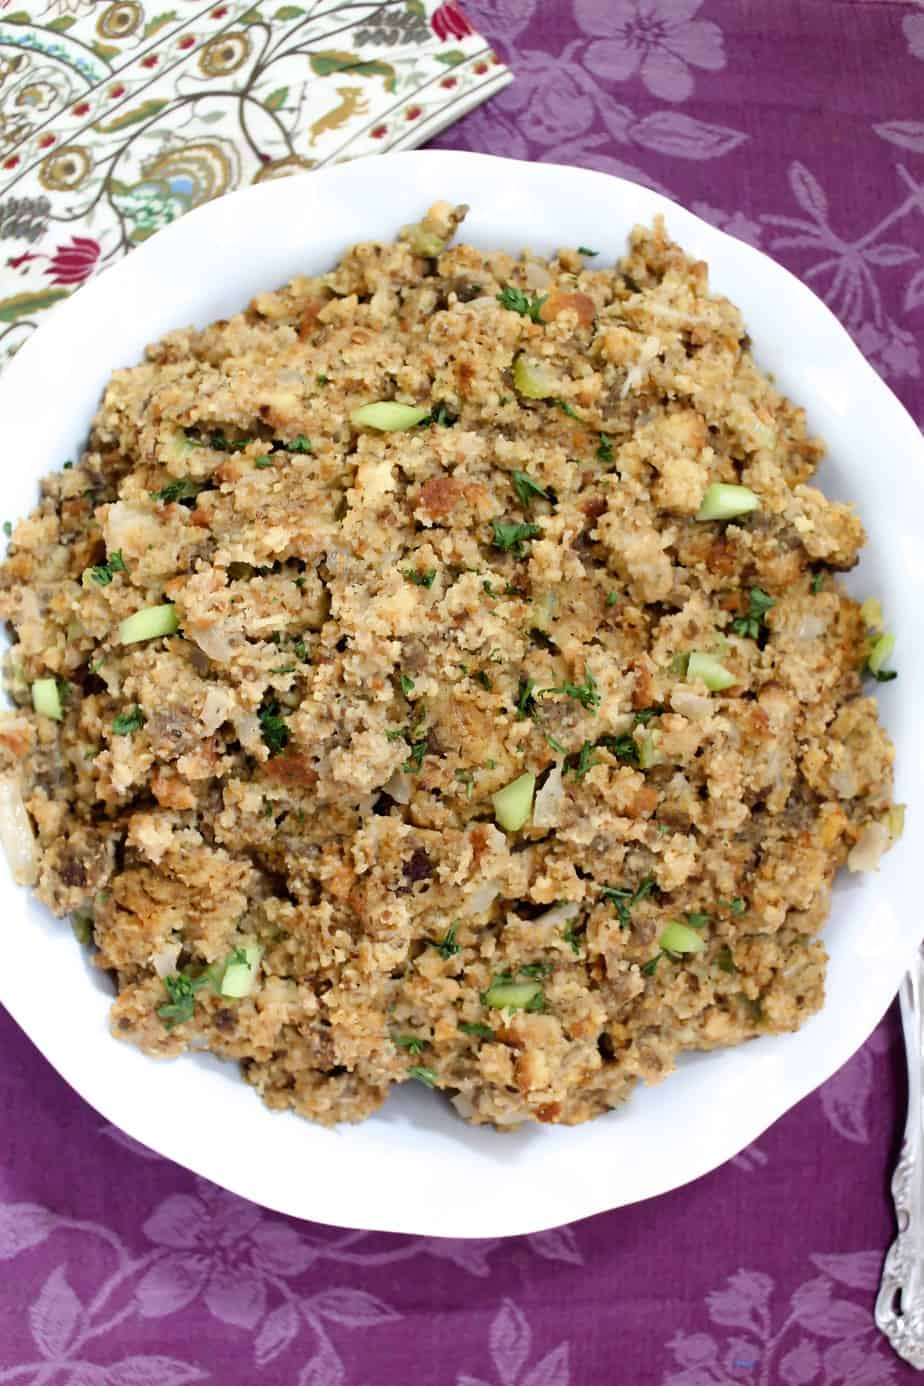 Round Bowl of Southern Cornbread Dressing